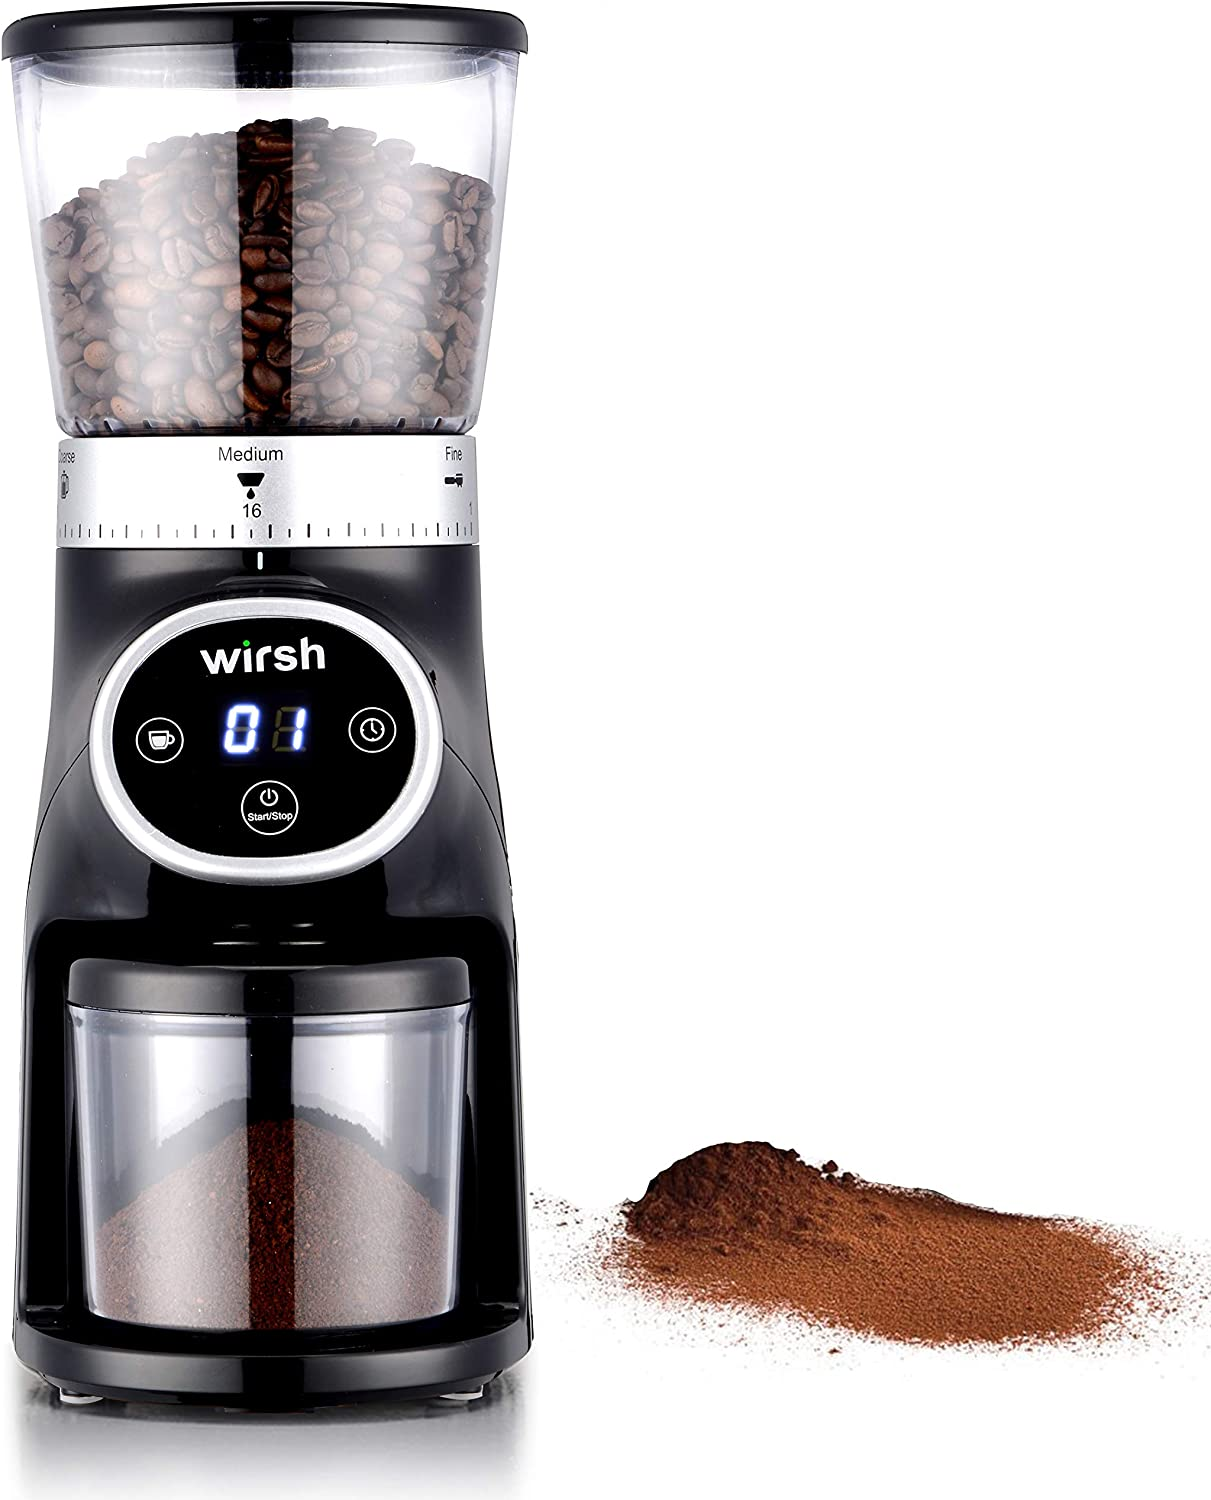 Wirsh Conical Burr Coffee Grinder - Coffee Grinder with Stainless Steel Conical Burr Mill, 31 Precise Grind Settings from Ultra-fine to Coarse, Electric Coffee Grinder for French Press, Pour Over, Drip, Siphon, Espresso and Turkish Coffee Makers